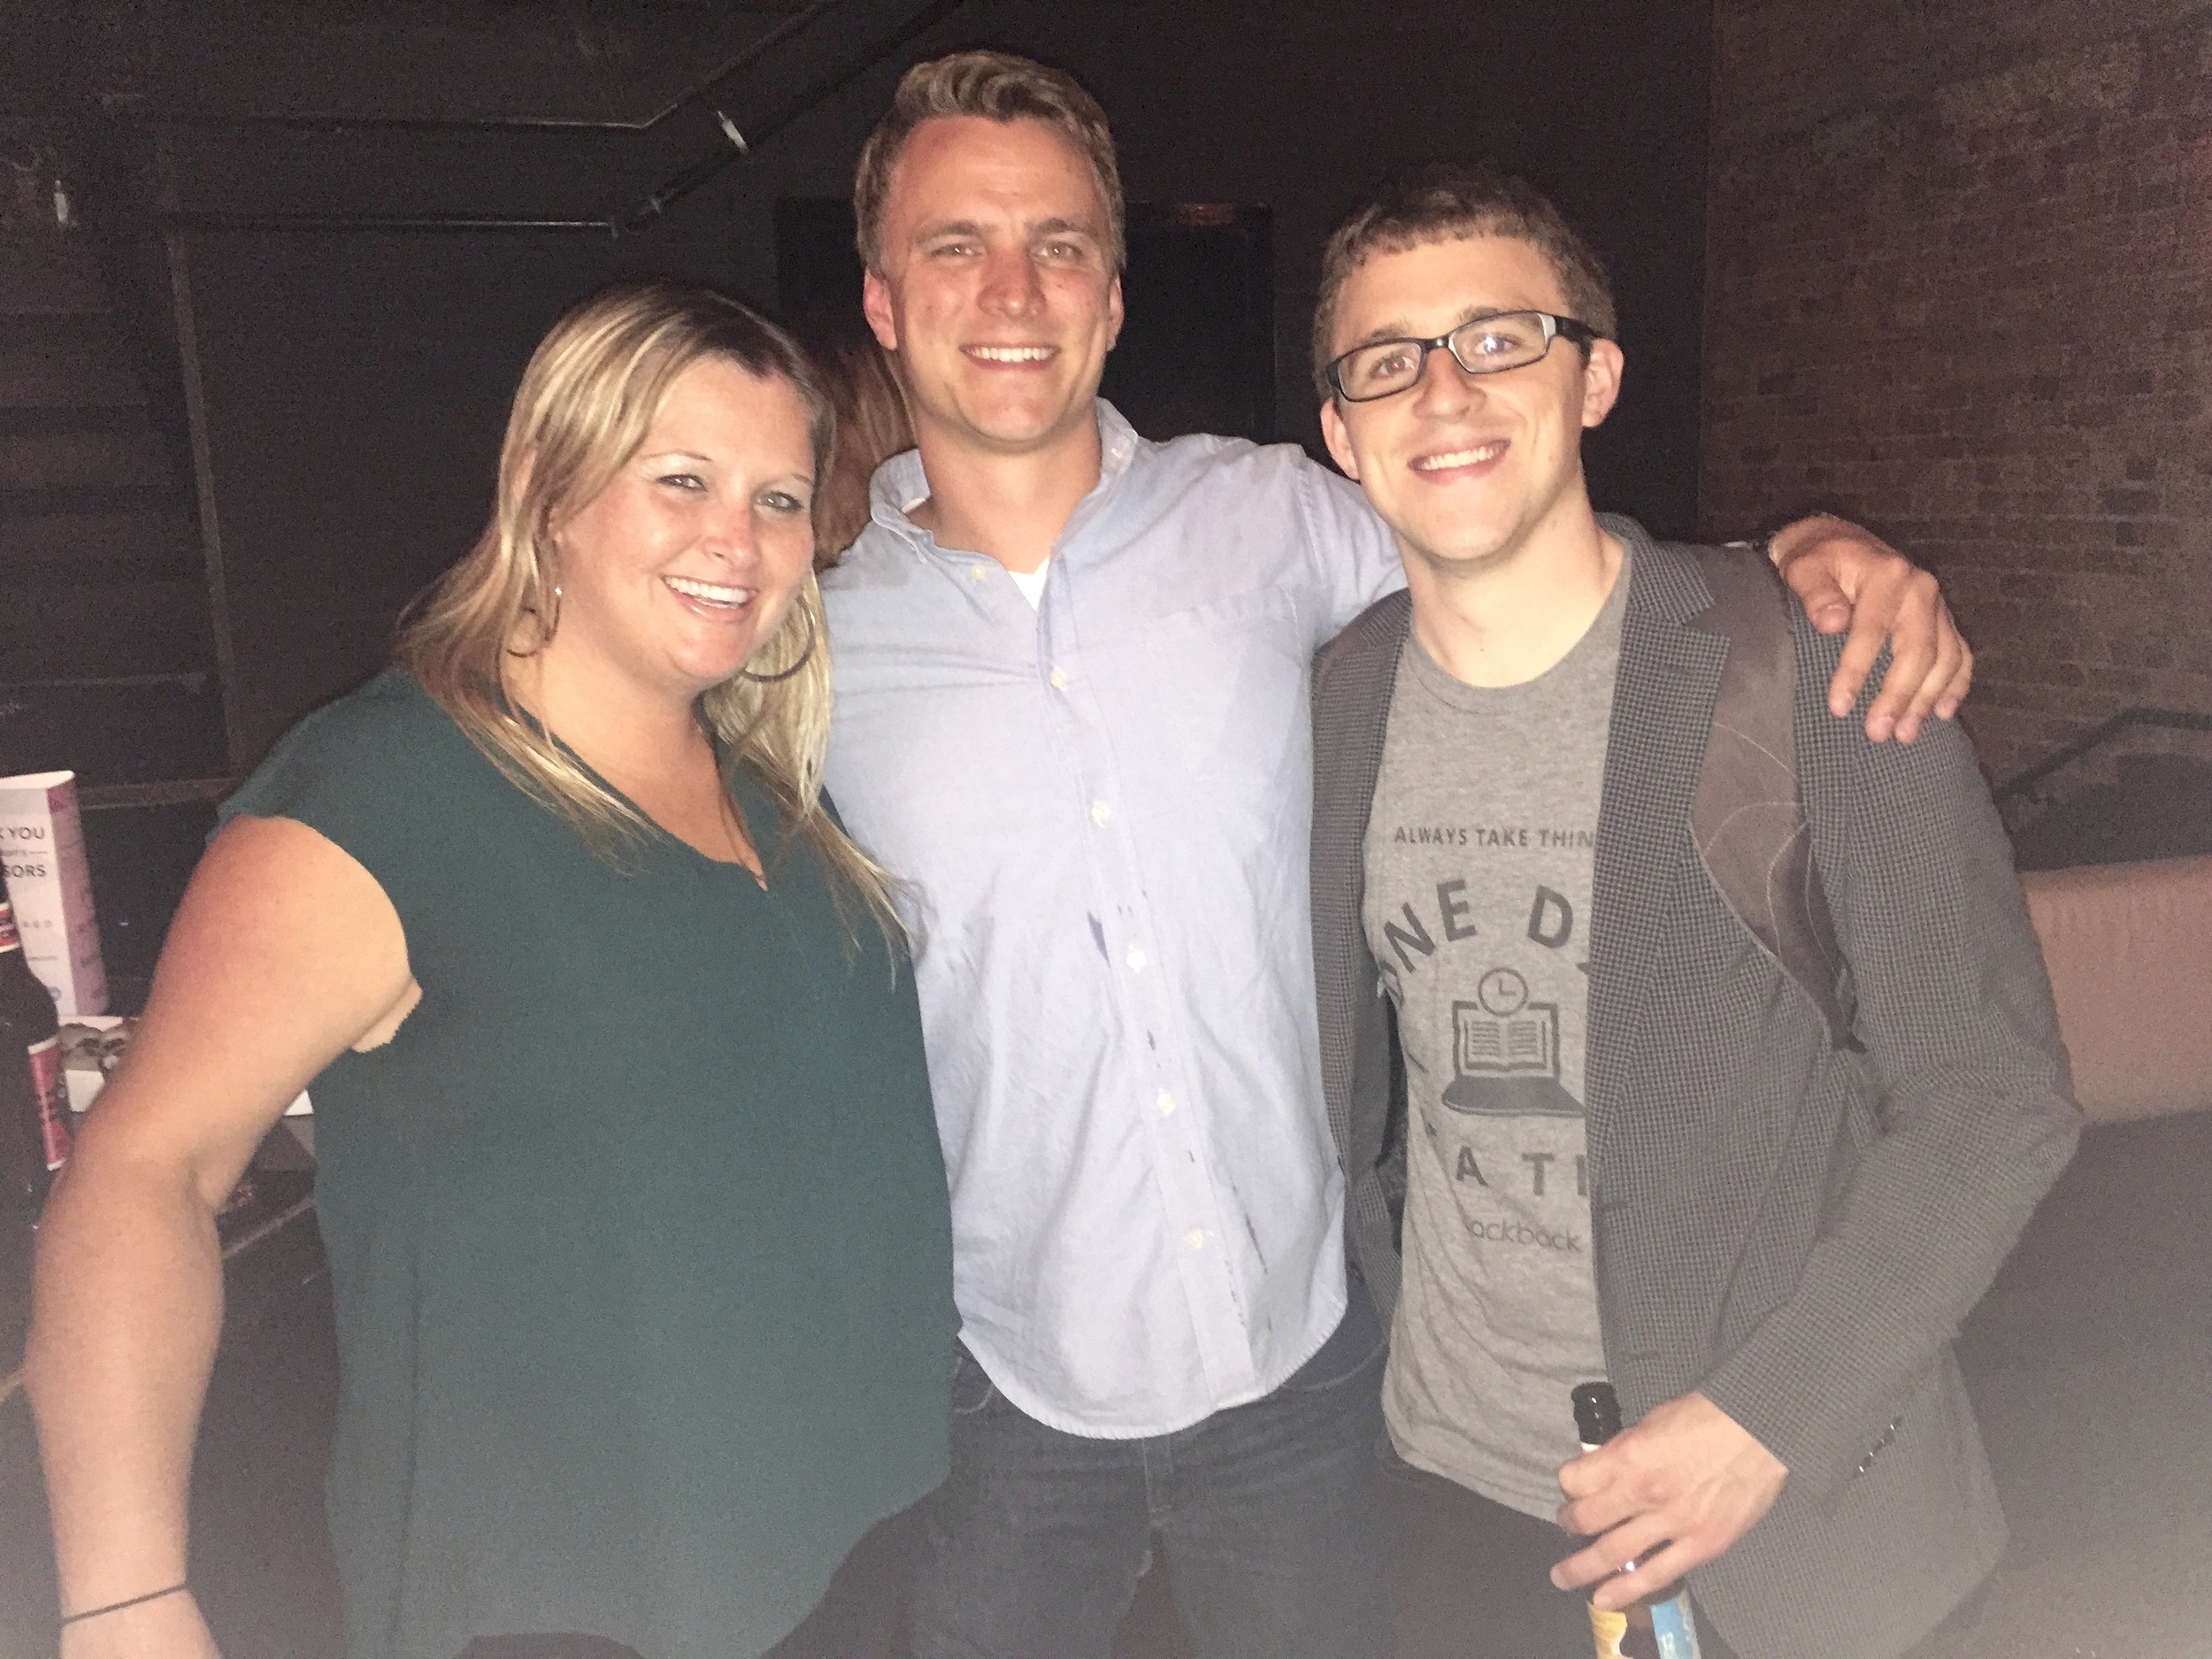 Amanda with Adam Tilton of Rithmio and Mike Shannon of Packback at Catapult's Celebration in June.